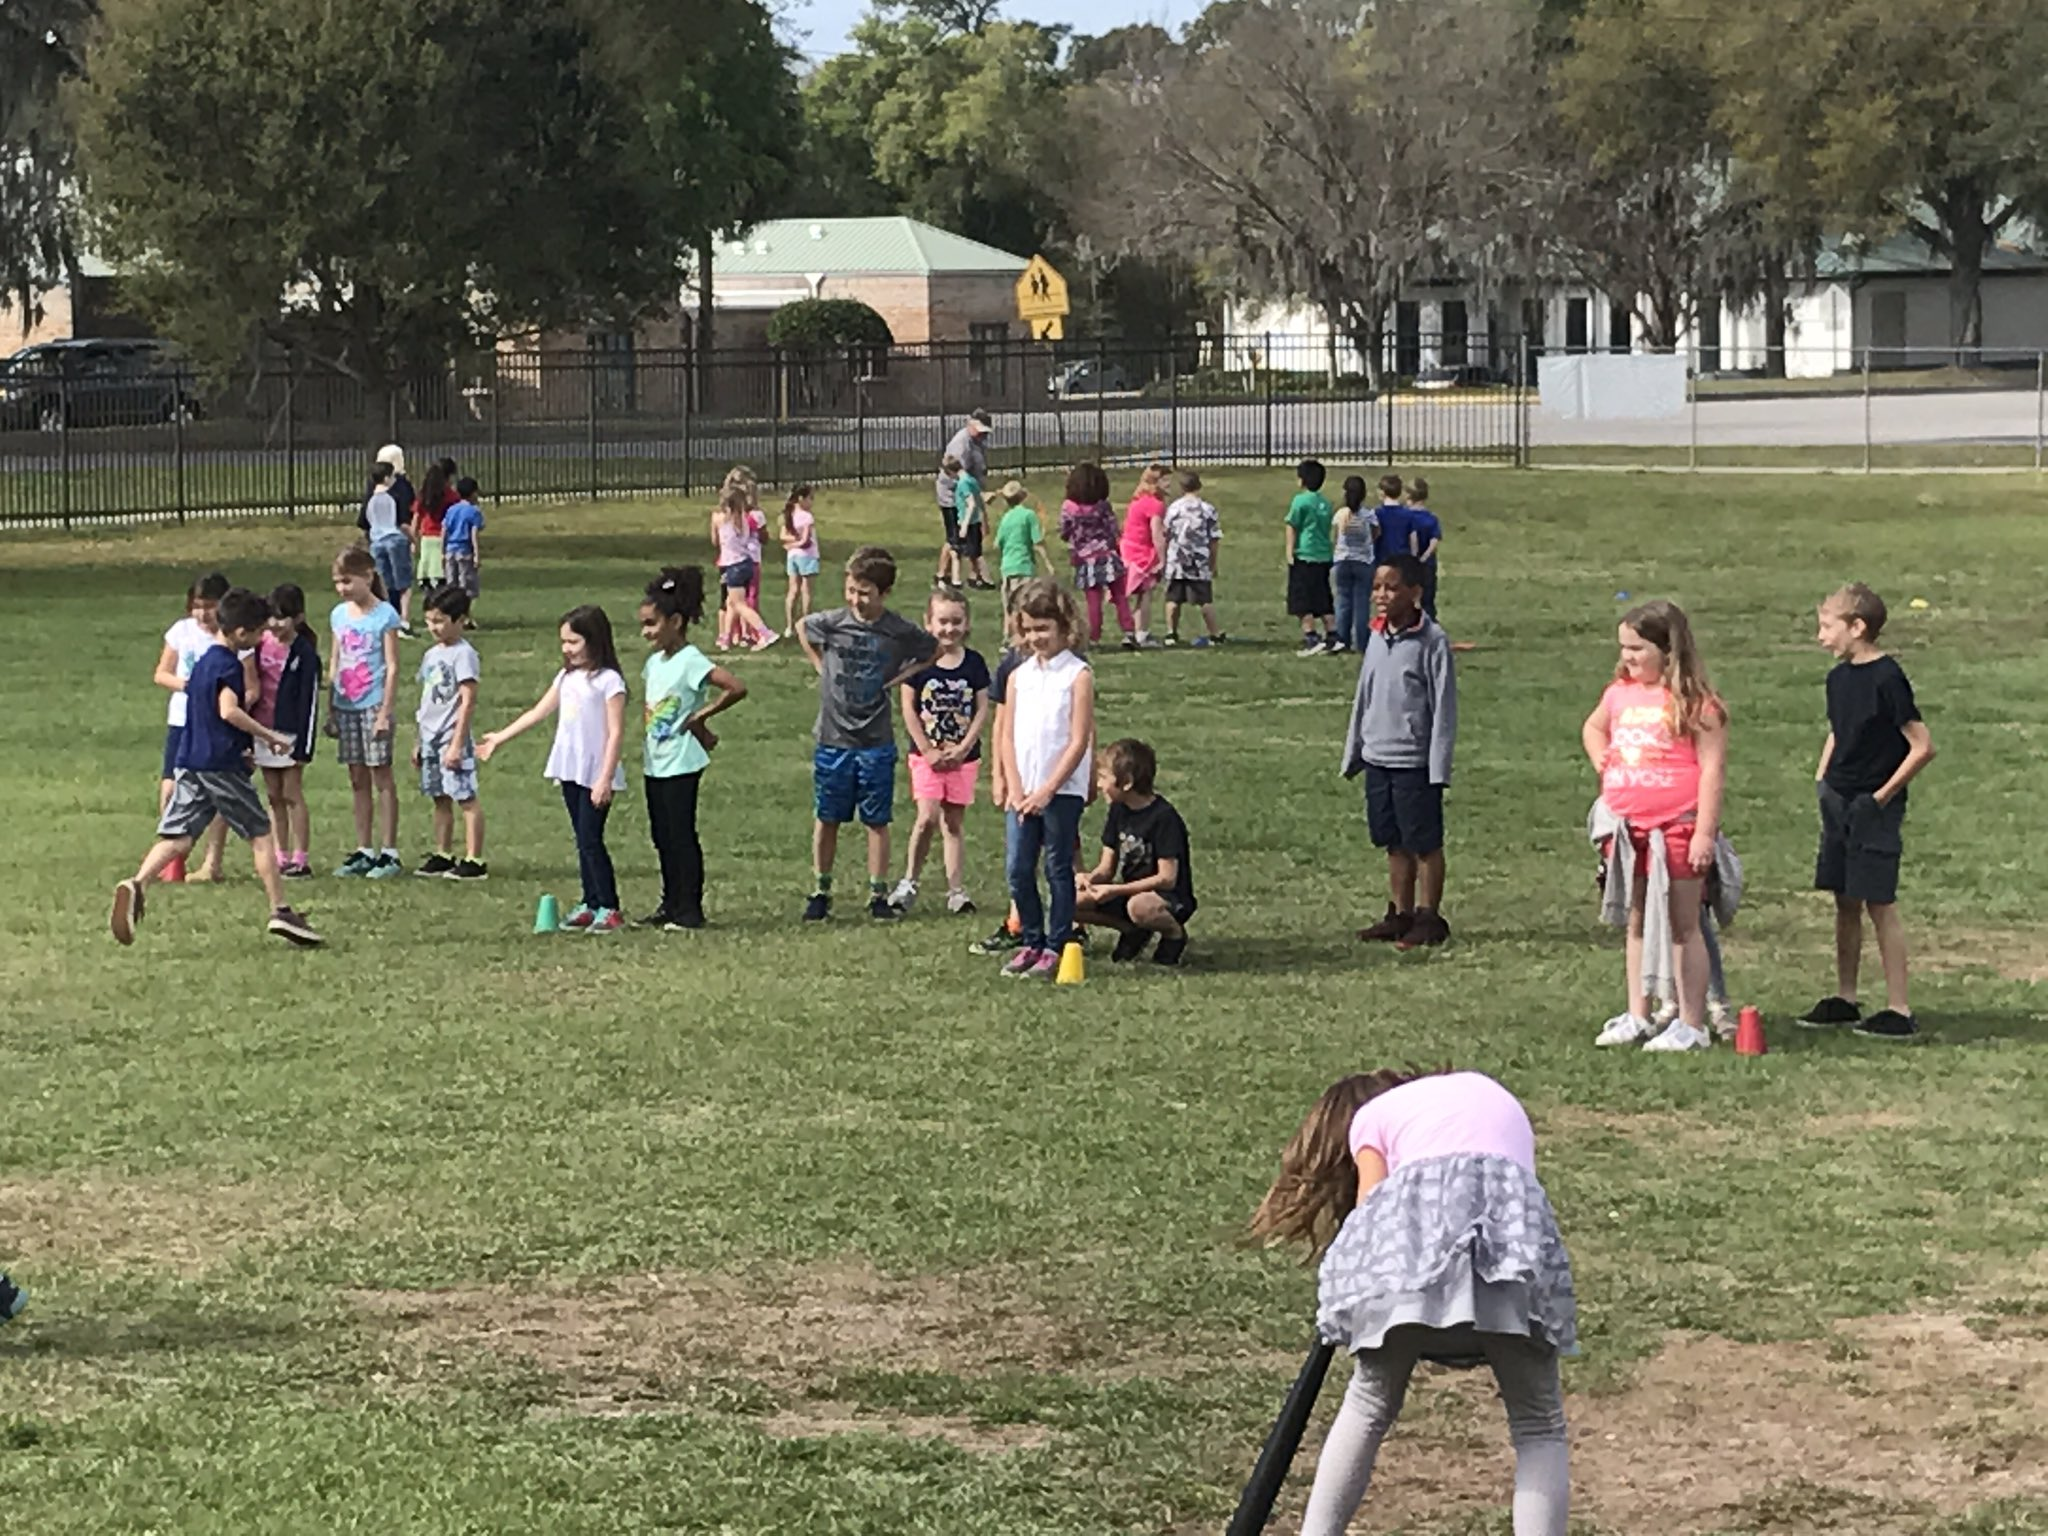 K-2 Ss rewarded for making positive choices all semester @ipseagles https://t.co/SrUQ6aGtZH